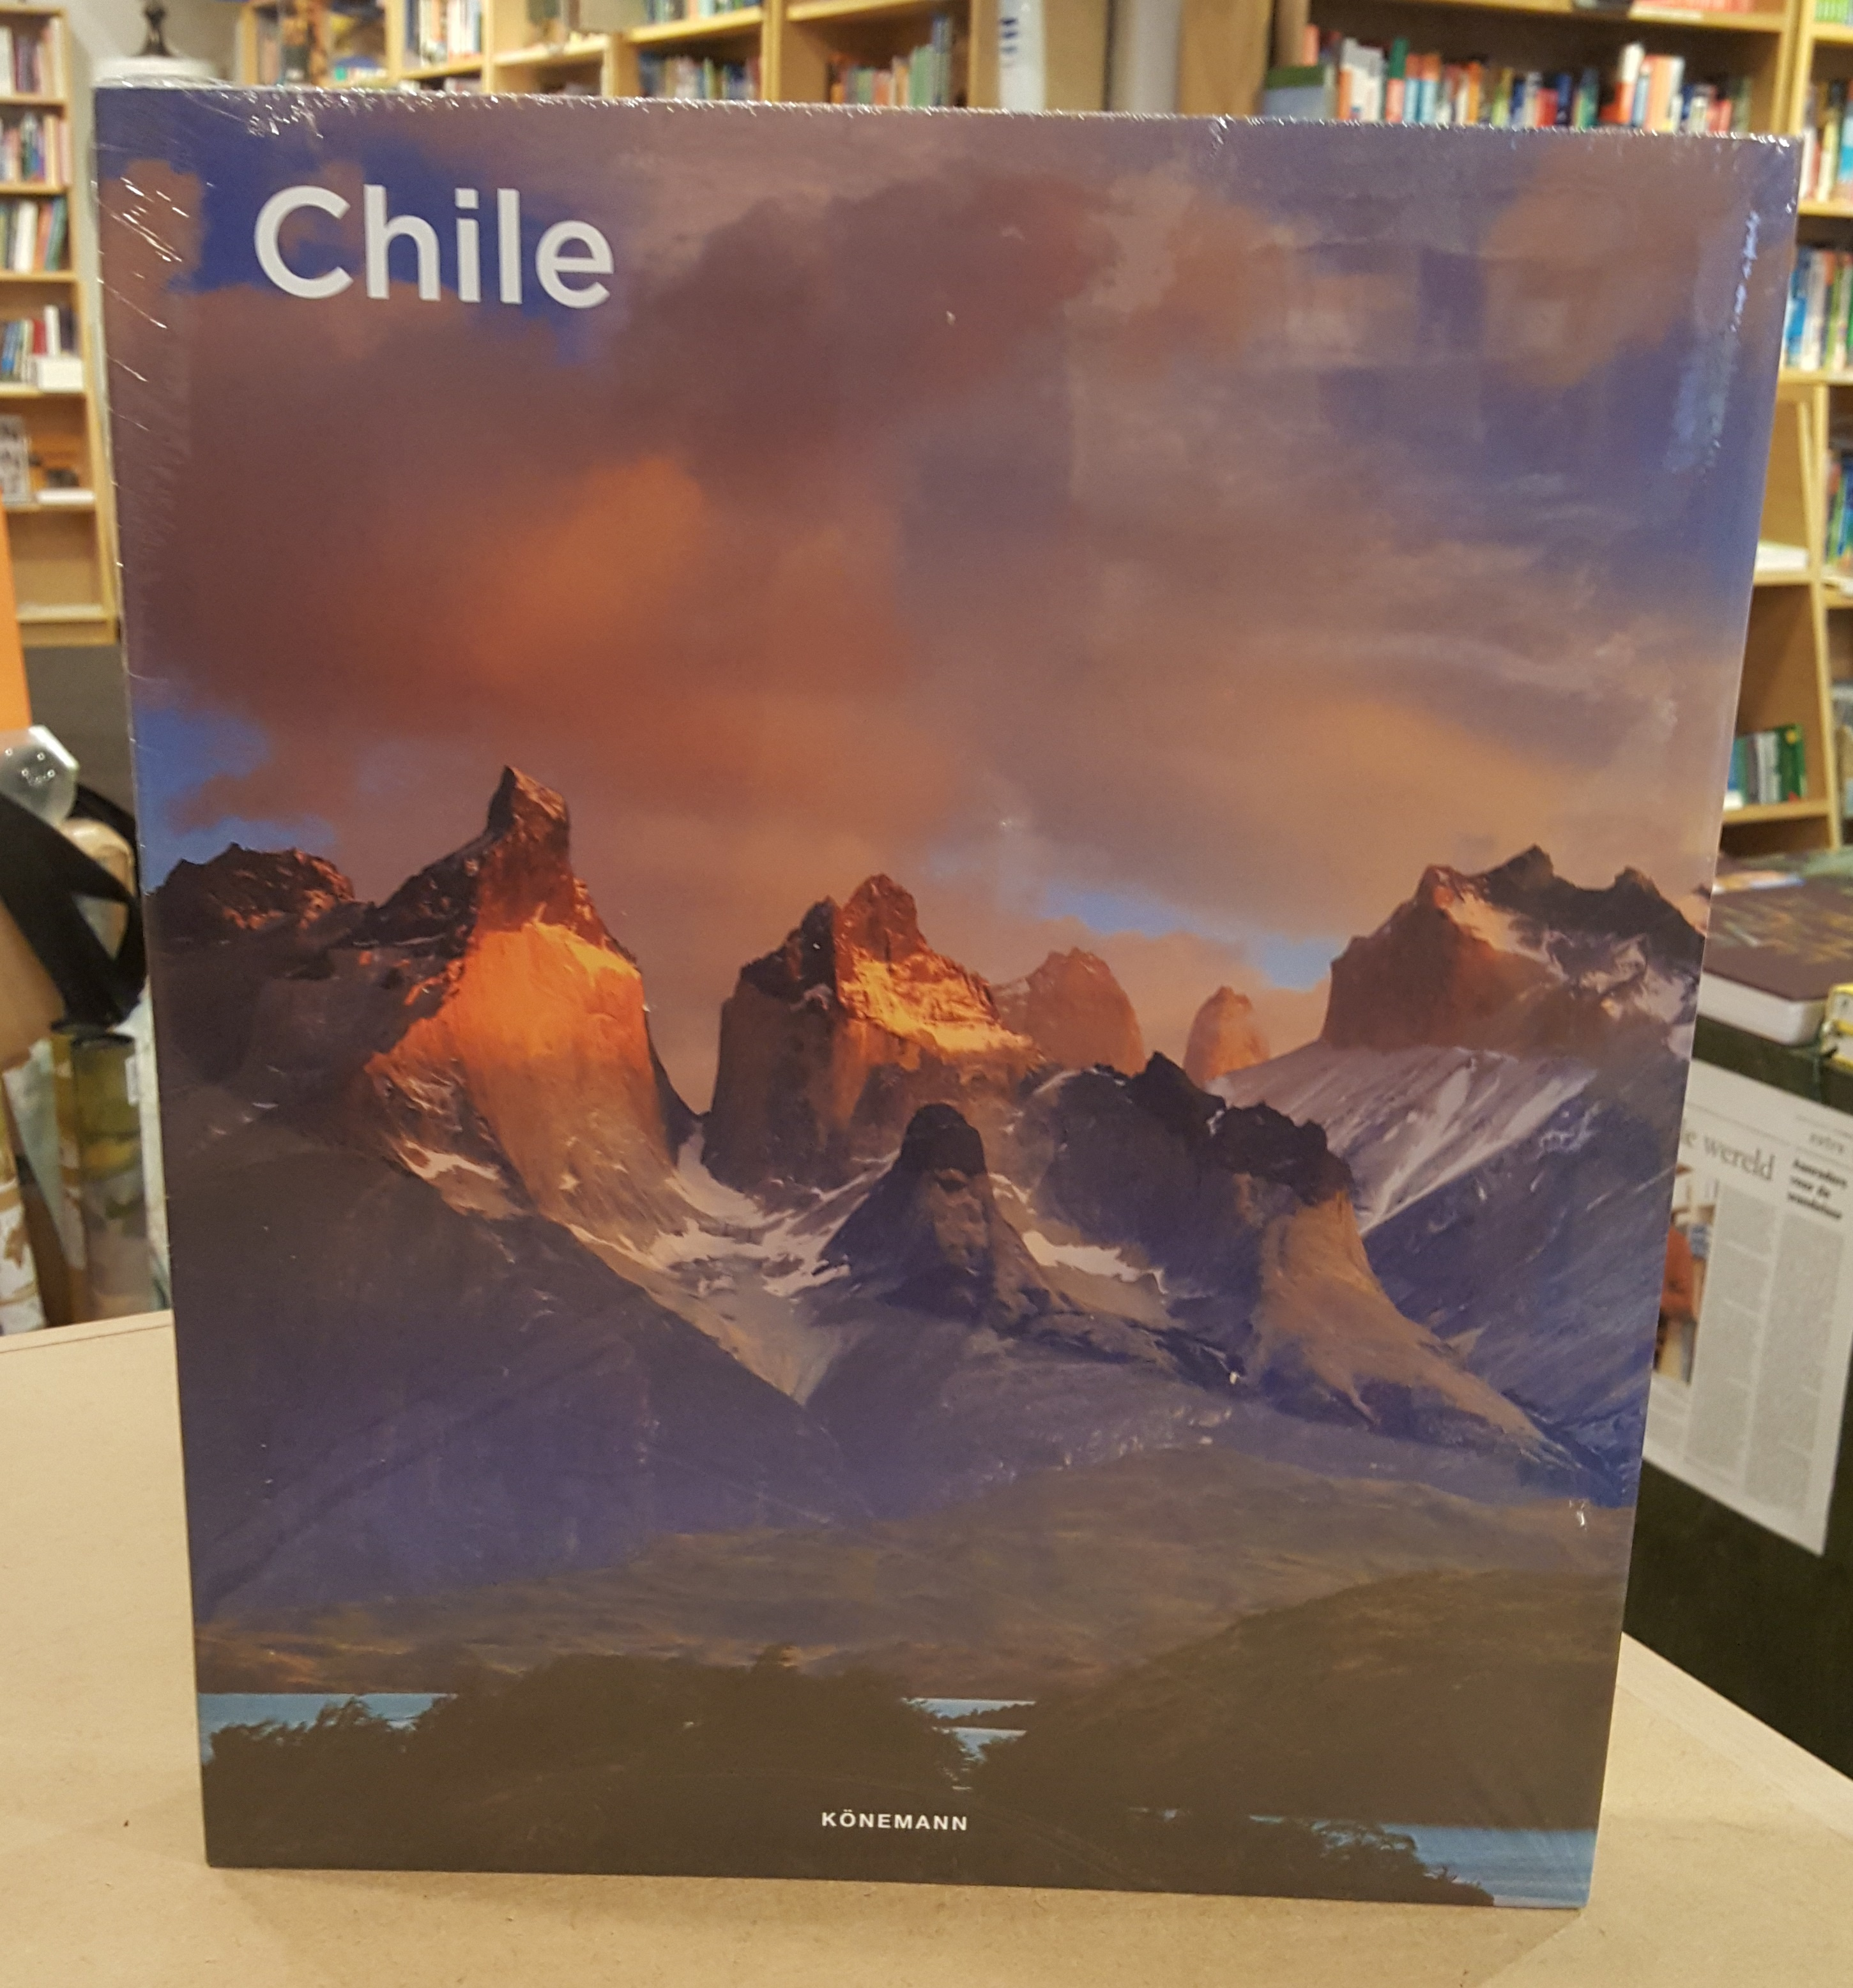 Chile | fotoboek Chili 9783741920196  Könemann   Fotoboeken Chili